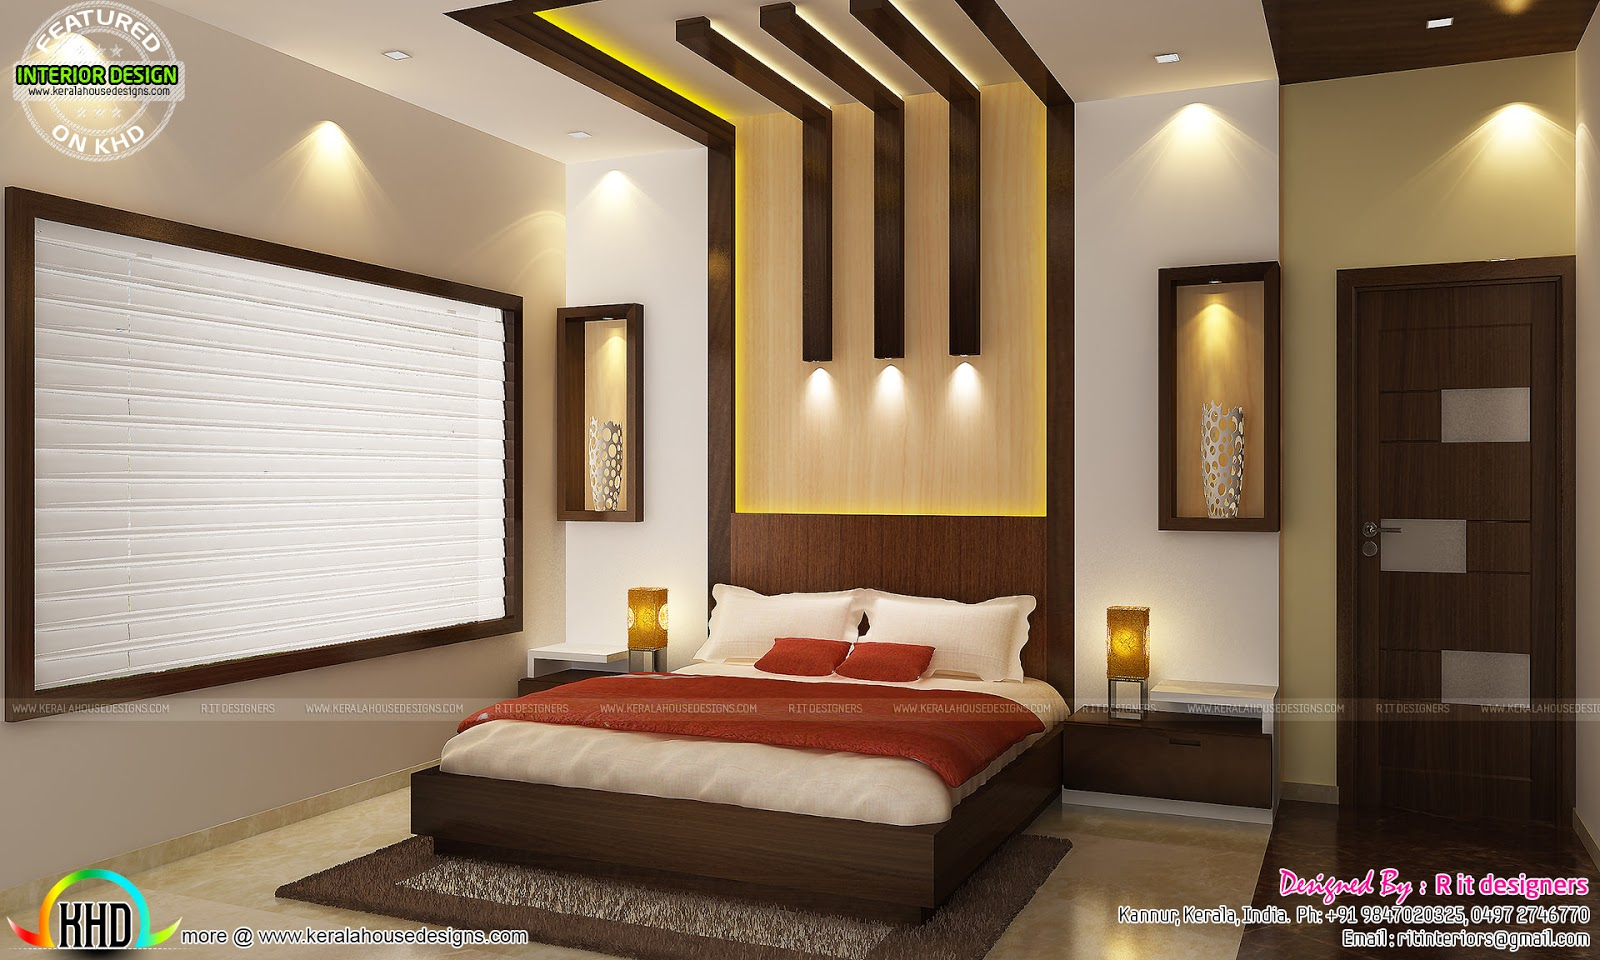 Kitchen living bedroom dining interior decor kerala - Interior design for bedroom in india ...